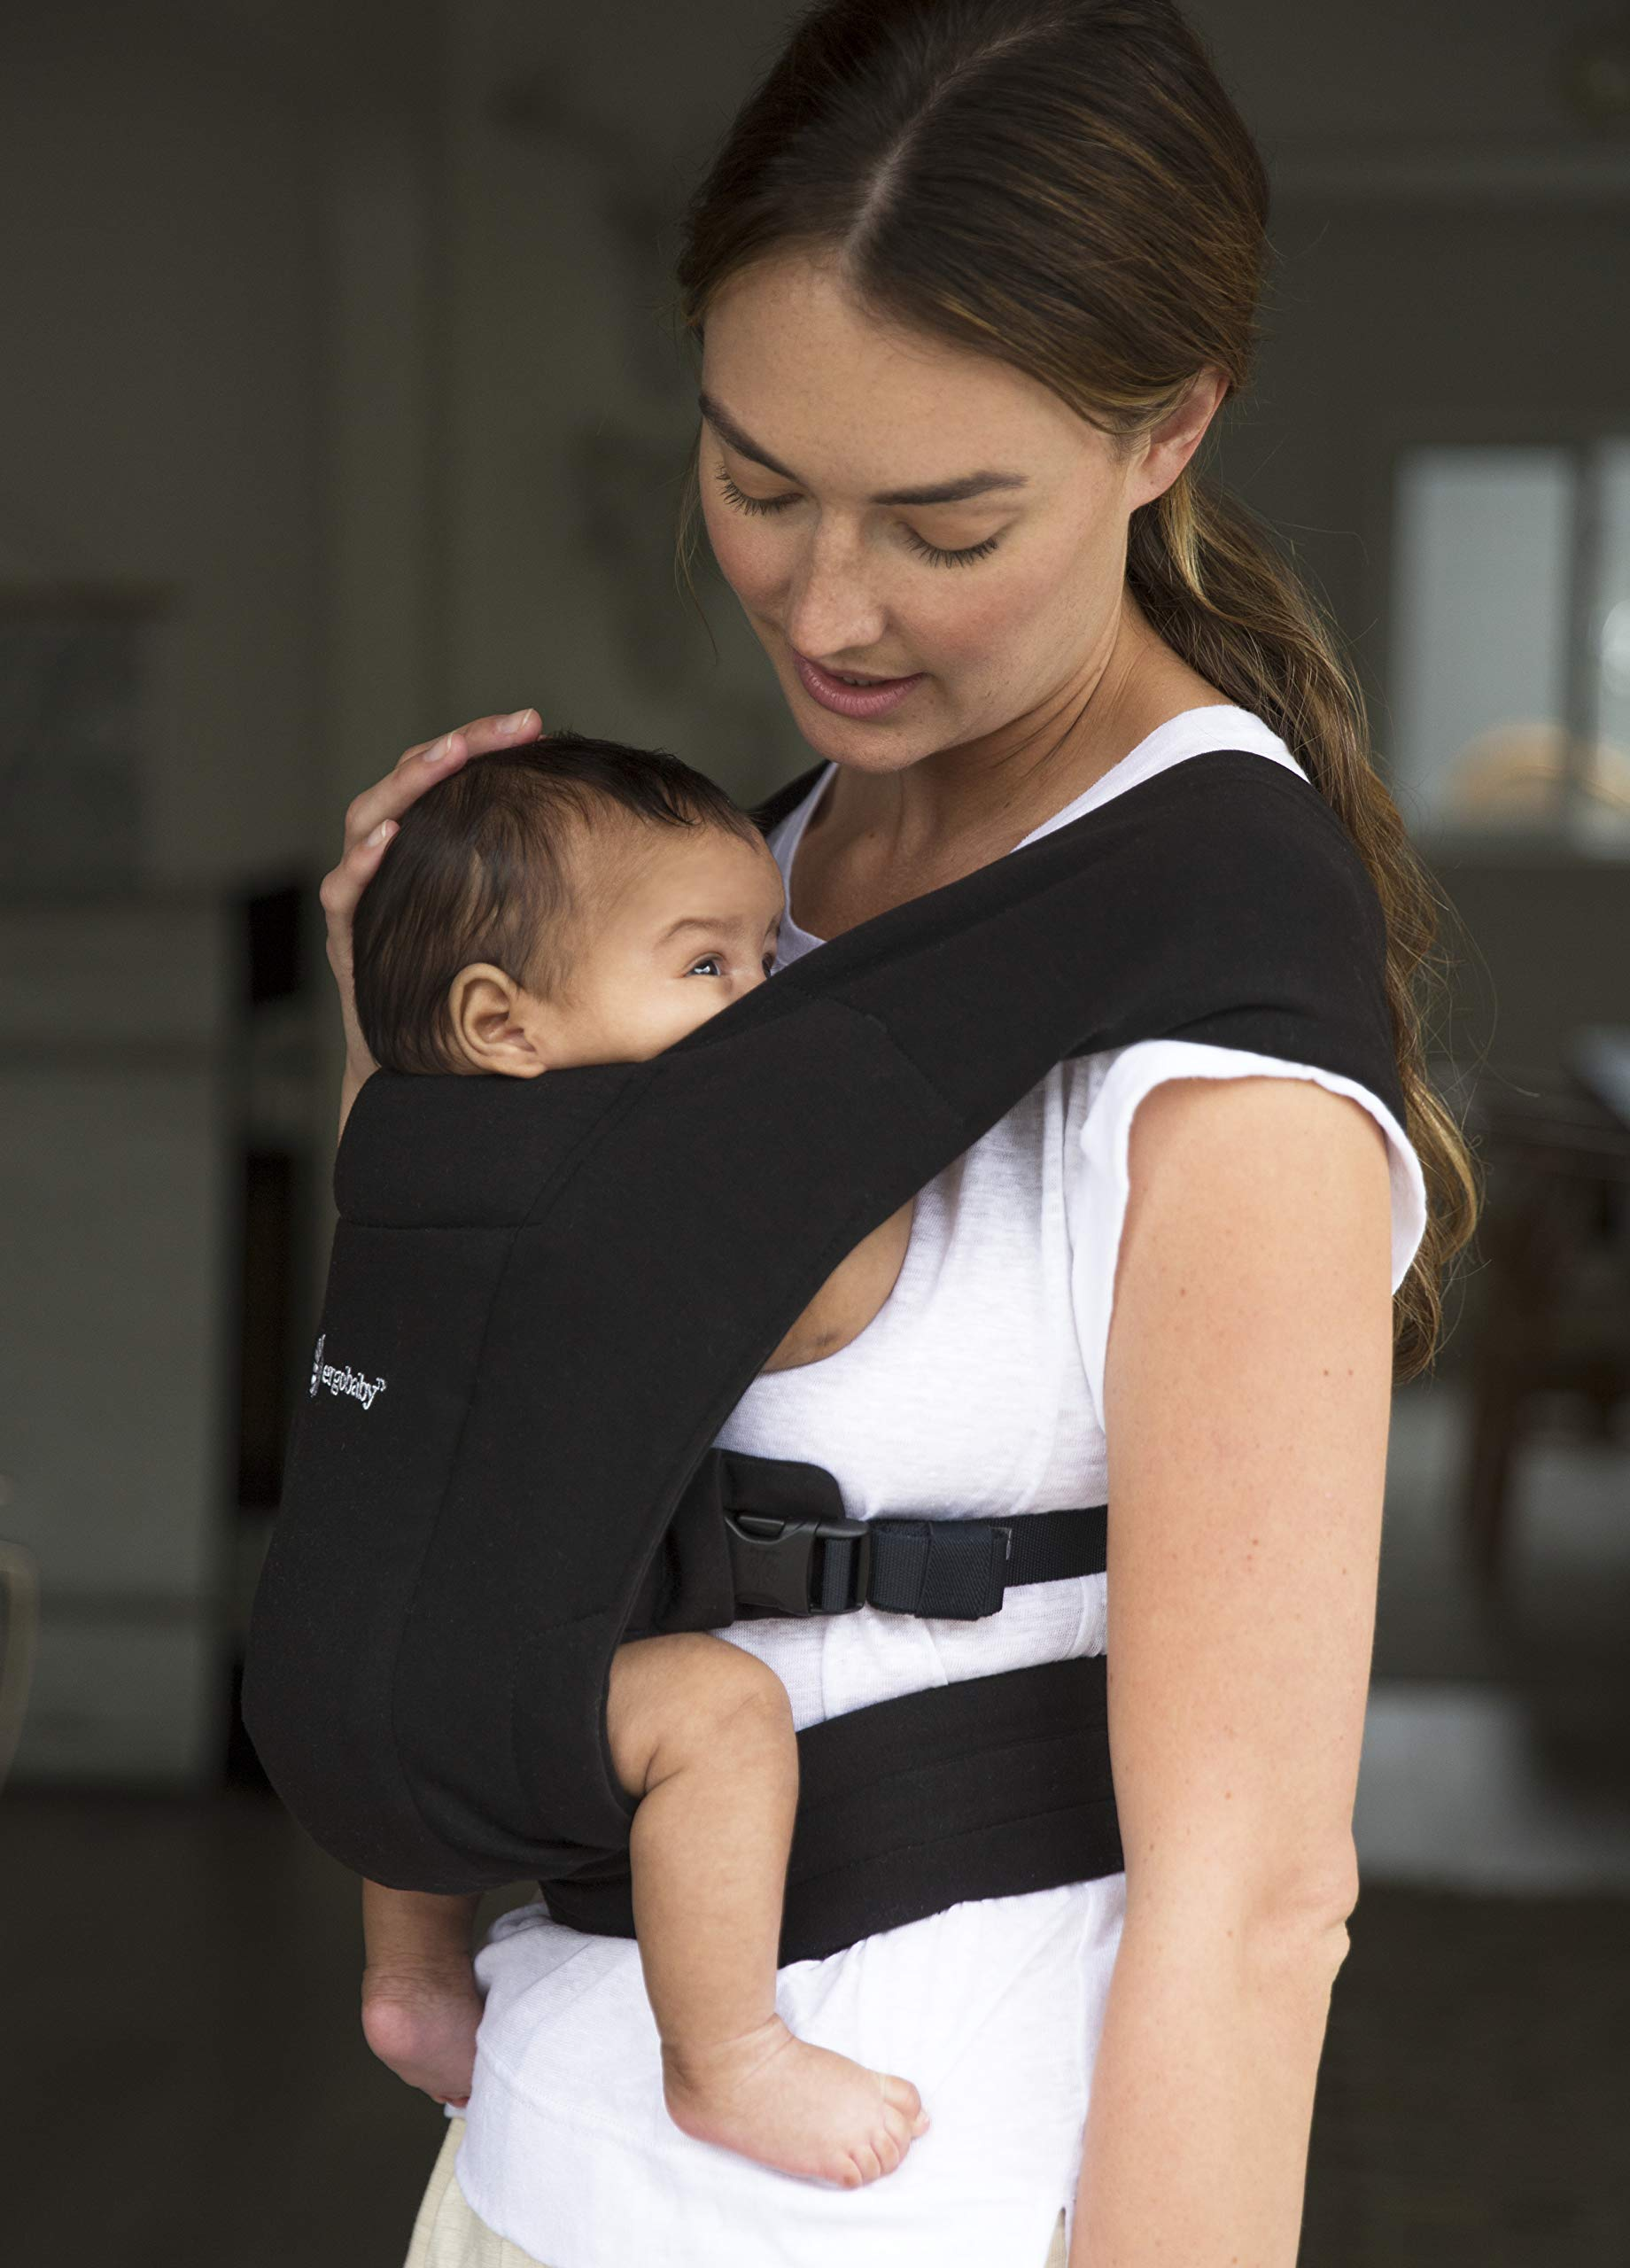 """ErgobabyEmbraceBaby Carrier for Newborns from Birth with Head Support, Extra Soft and Ergonomic (Pure Black) Ergobaby ERGONOMIC BABY CARRIER FROM BIRTH - Carry your newborn baby (3.2 - 11.3kg) snuggled close to you. The baby carrier supports the ergonomic frog-leg position (""""M"""" shape position) of the baby. NEW - The Ergobaby Embrace 2-position Carrier has been specially developed for newborns and babies. A baby carry system for quick and easy use. ULTRA-LIGHT & SUPER SOFT - Less material against the child and open-sided to allow good air circulation. Made from super soft jersey fabric, Oeko-Tex100 certified. Lightweight carrier (approx. 480g). 5"""